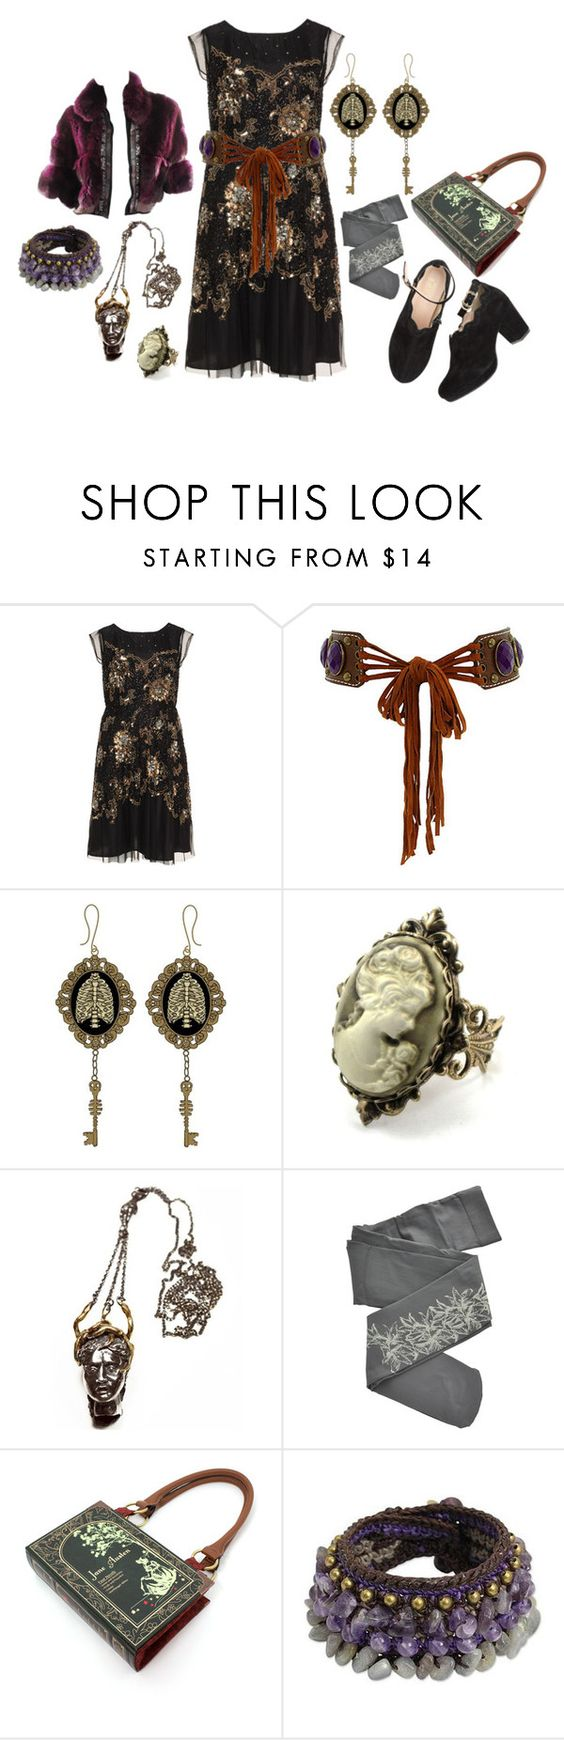 """""""Dolly kei"""" by roseunspindle ❤ liked on Polyvore featuring navabi, Leatherock, Cameo, Aesa, ZOHARA, NOVICA, Roberto Cavalli, black, fur and Sequin"""